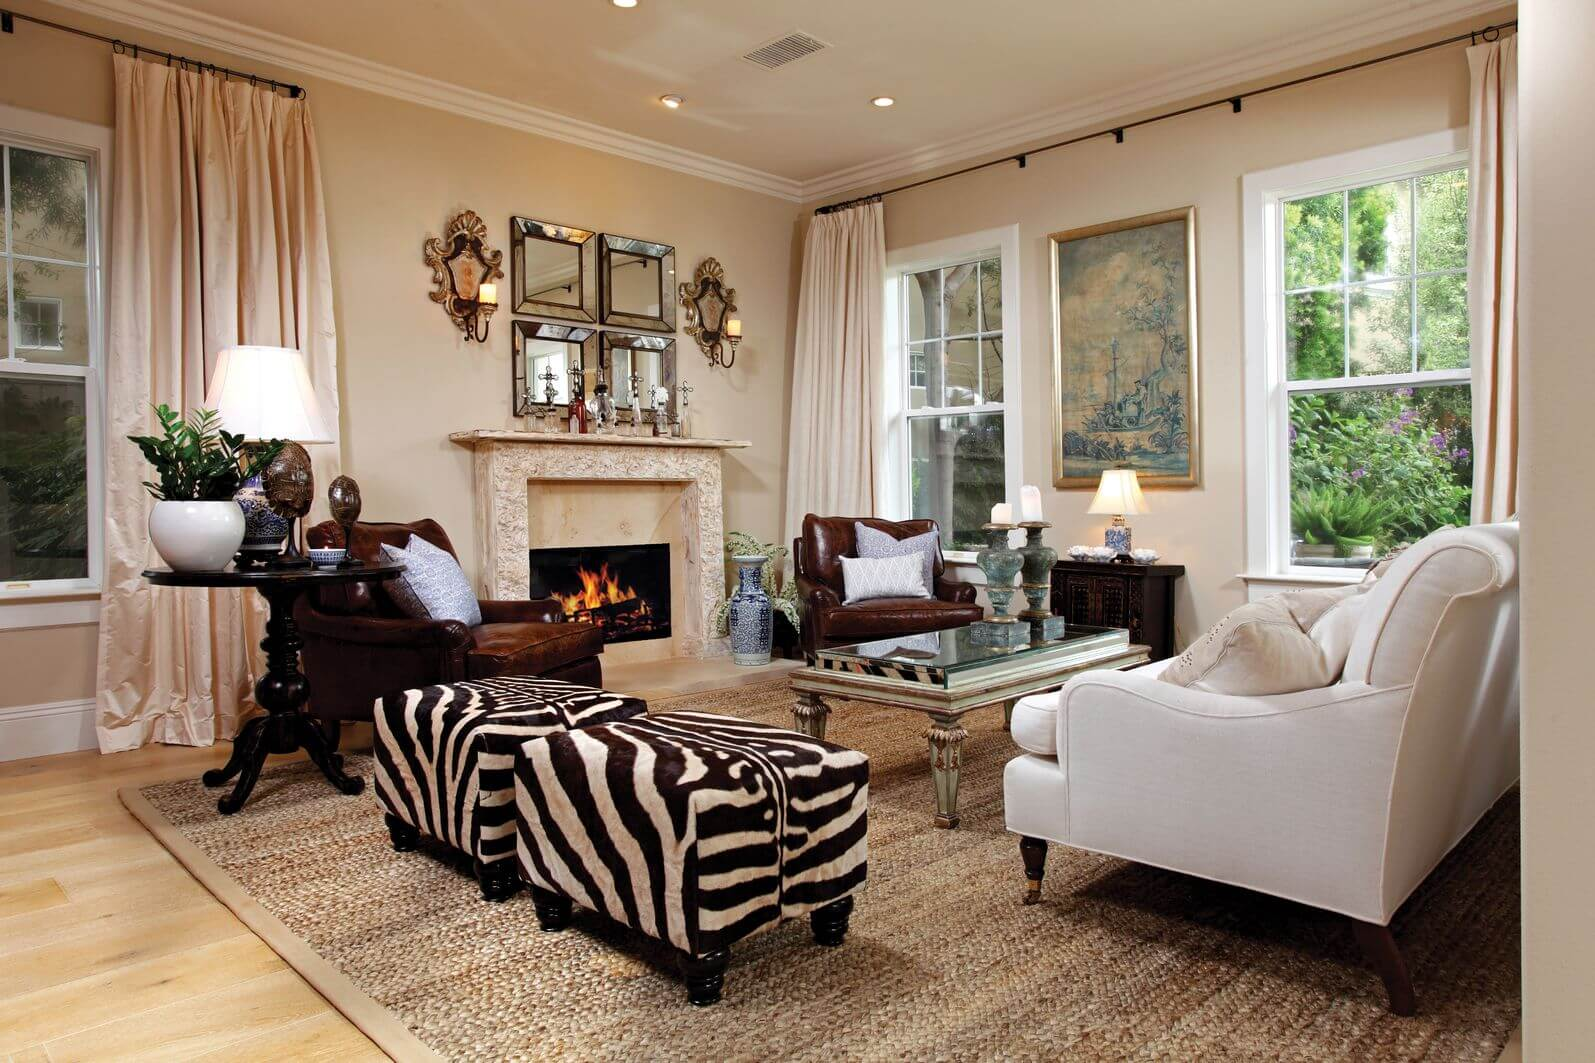 Perfect Larger Formal Living Room Incorporating Zebra Print With Two Identical  Zebra Print Ottomans Off To The